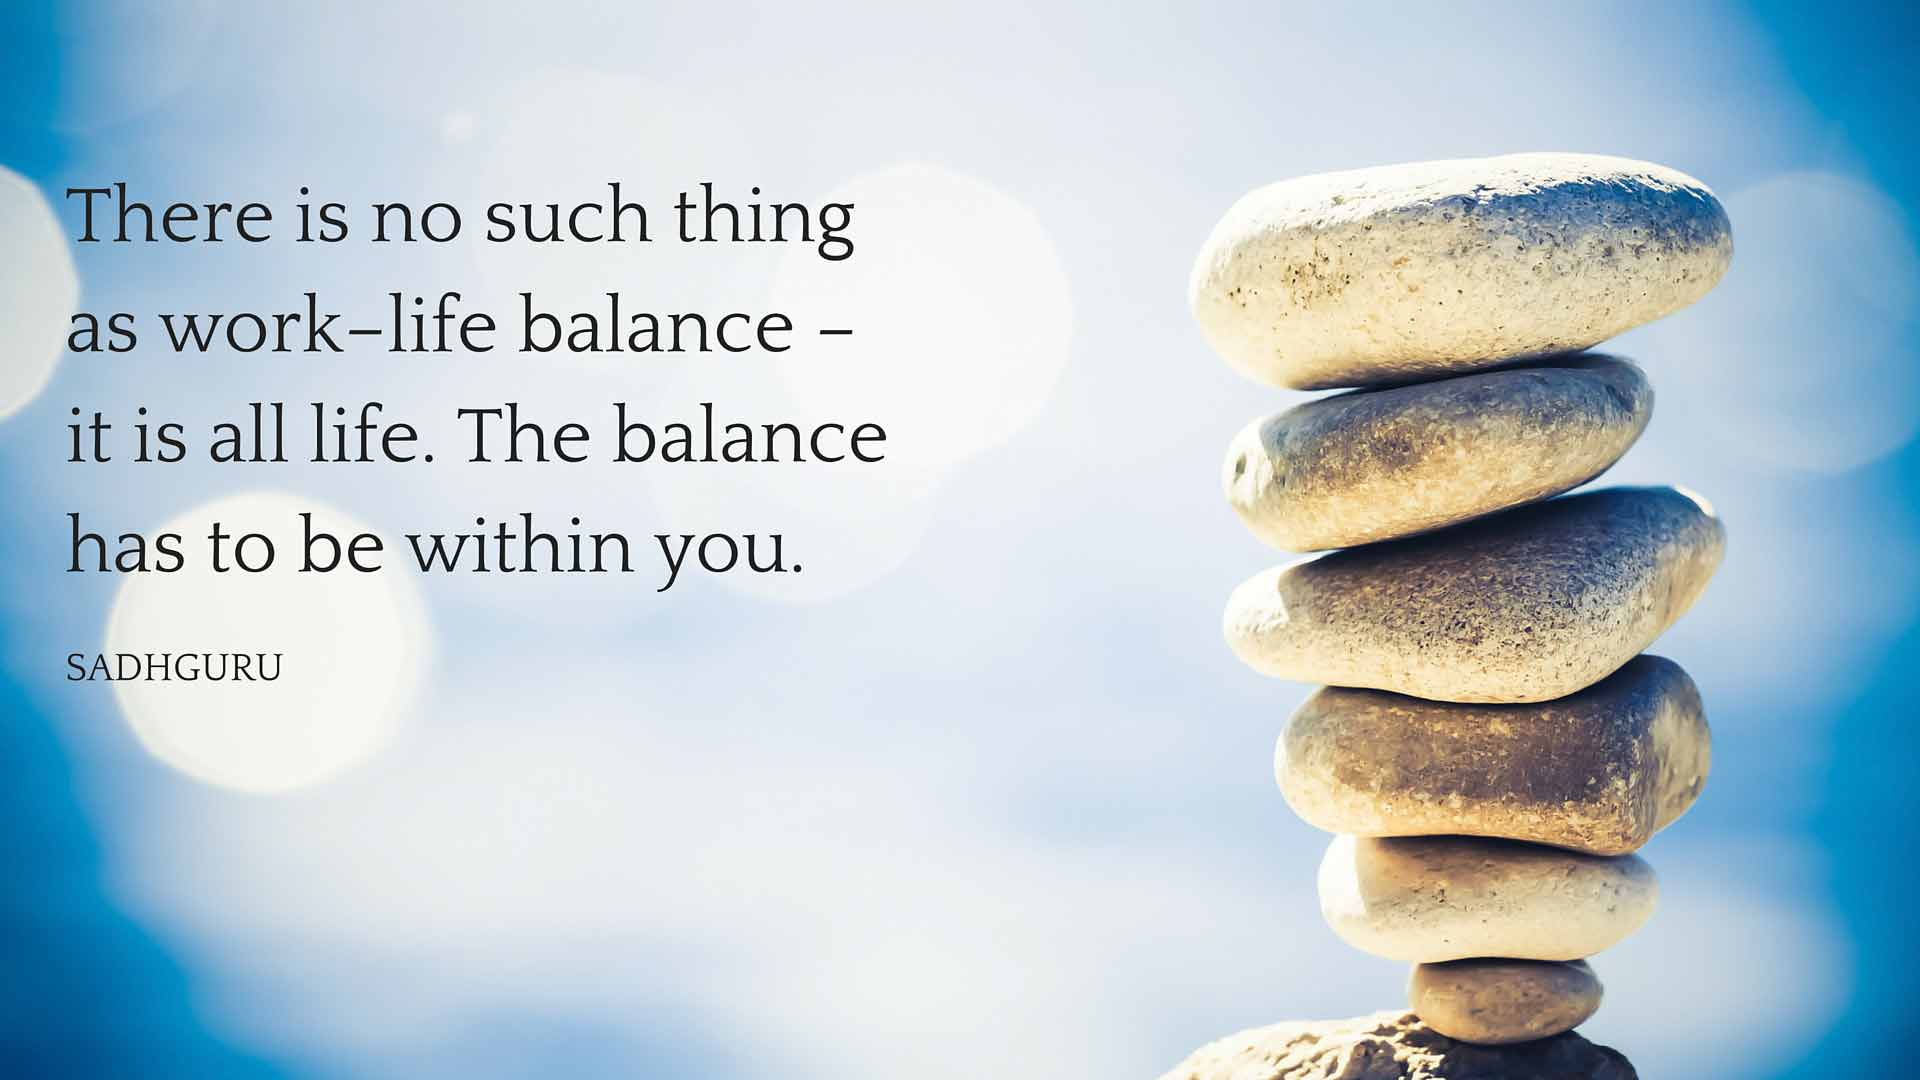 Sadhguru S Quotes On Work Life Balance Isha Sadhguru